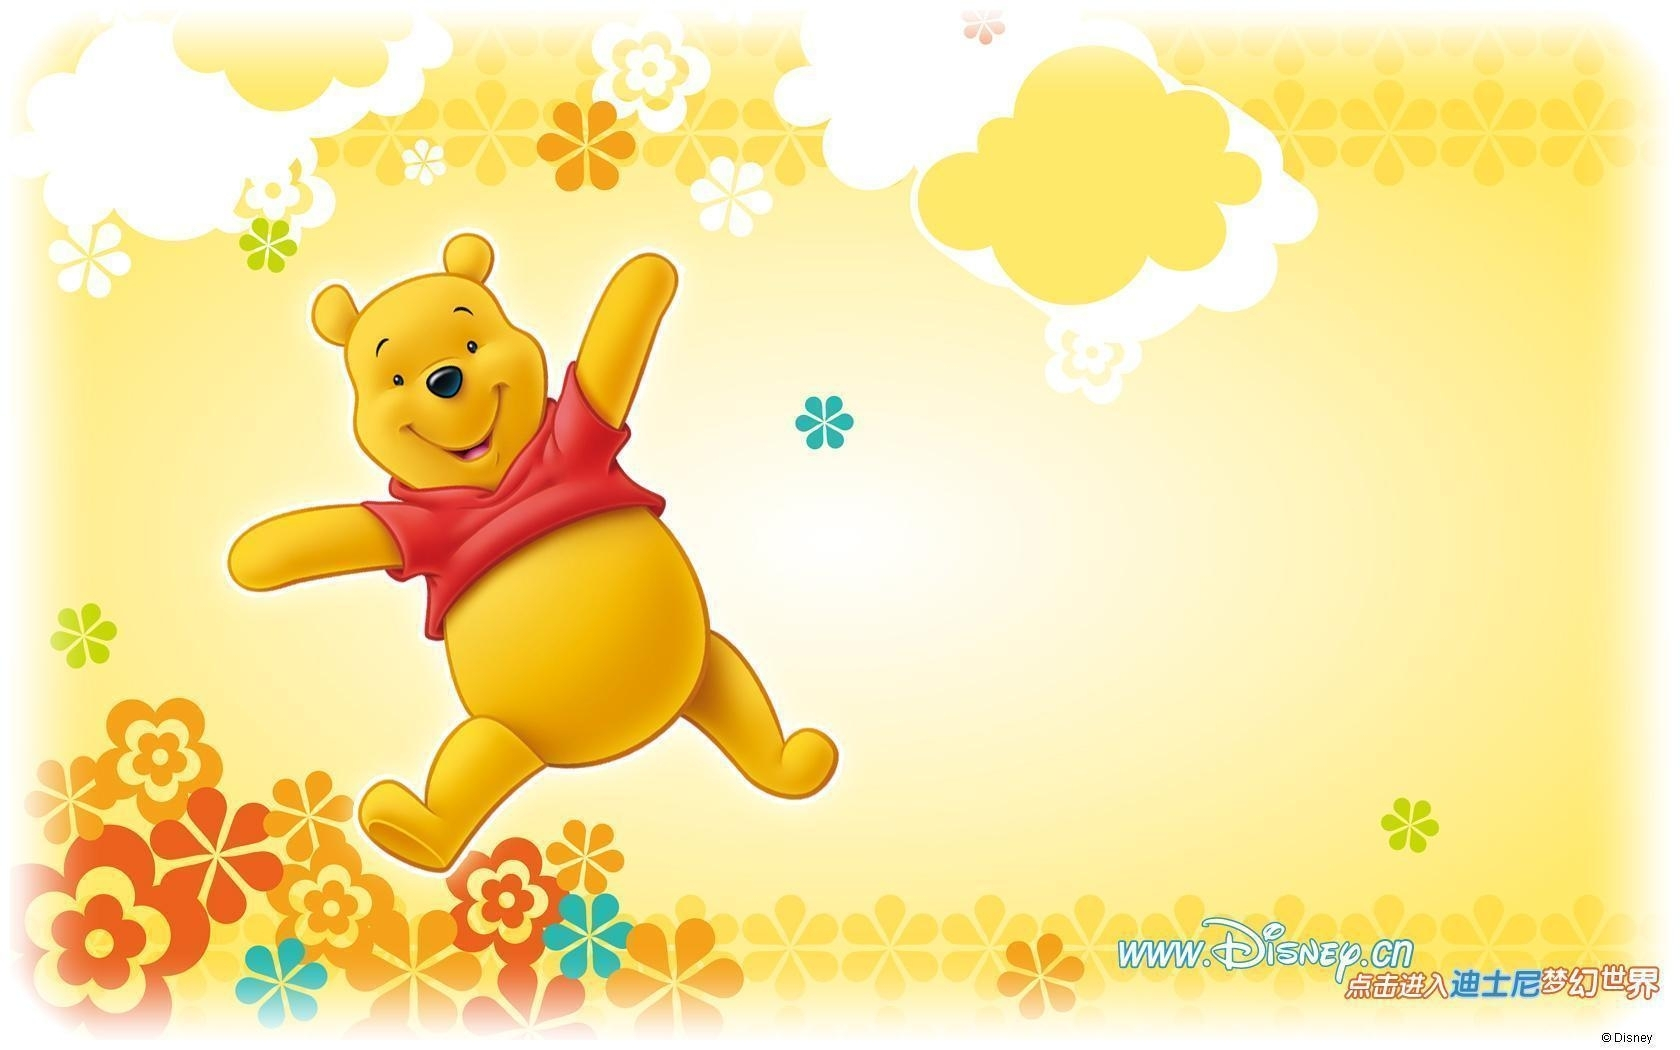 10 new winnie the pooh screensavers full hd 19201080 for pc desktop 10 new winnie the pooh screensavers full hd 19201080 for pc desktop 2018 free download voltagebd Gallery